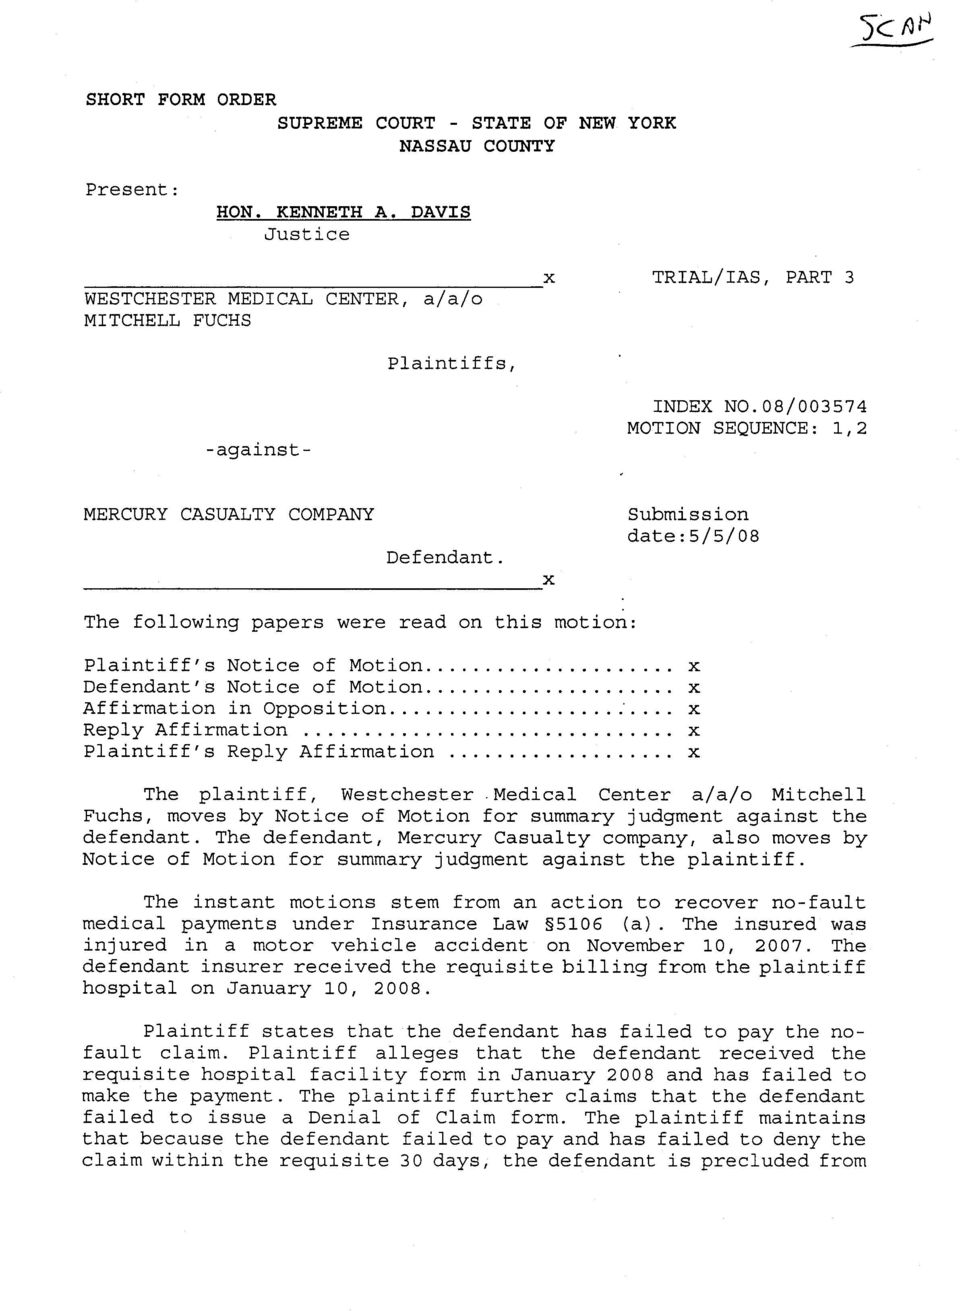 Submission date:5/5/08 The following papers were read on this motion: Plaintiff' s Notice of Motion... Defendant' s Notice of Motion... Affirmation in Opposition.